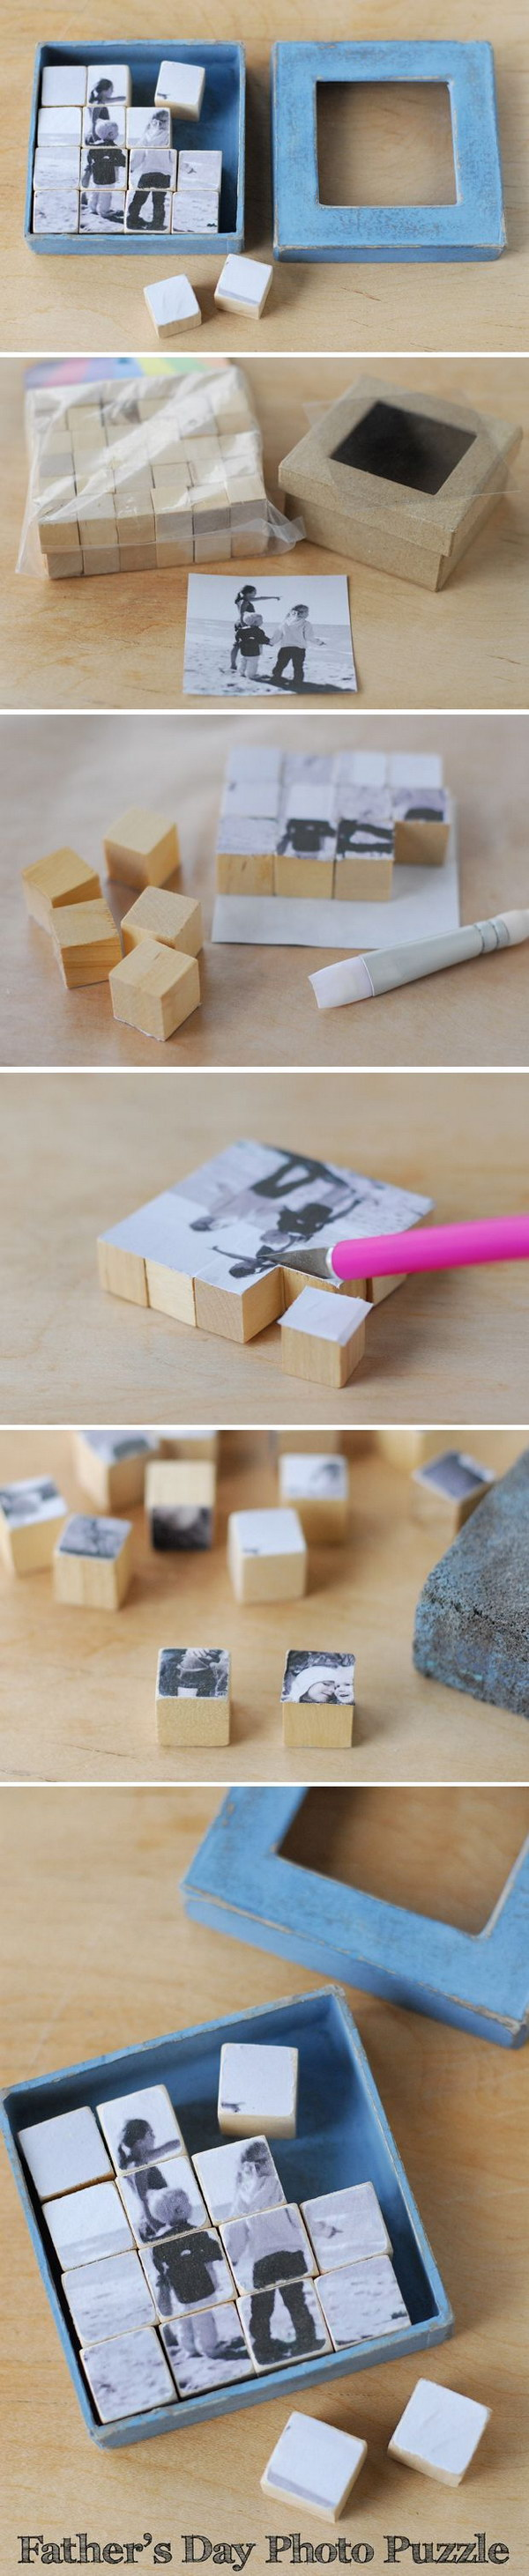 20 Diy Photo Gift Ideas Tutorials